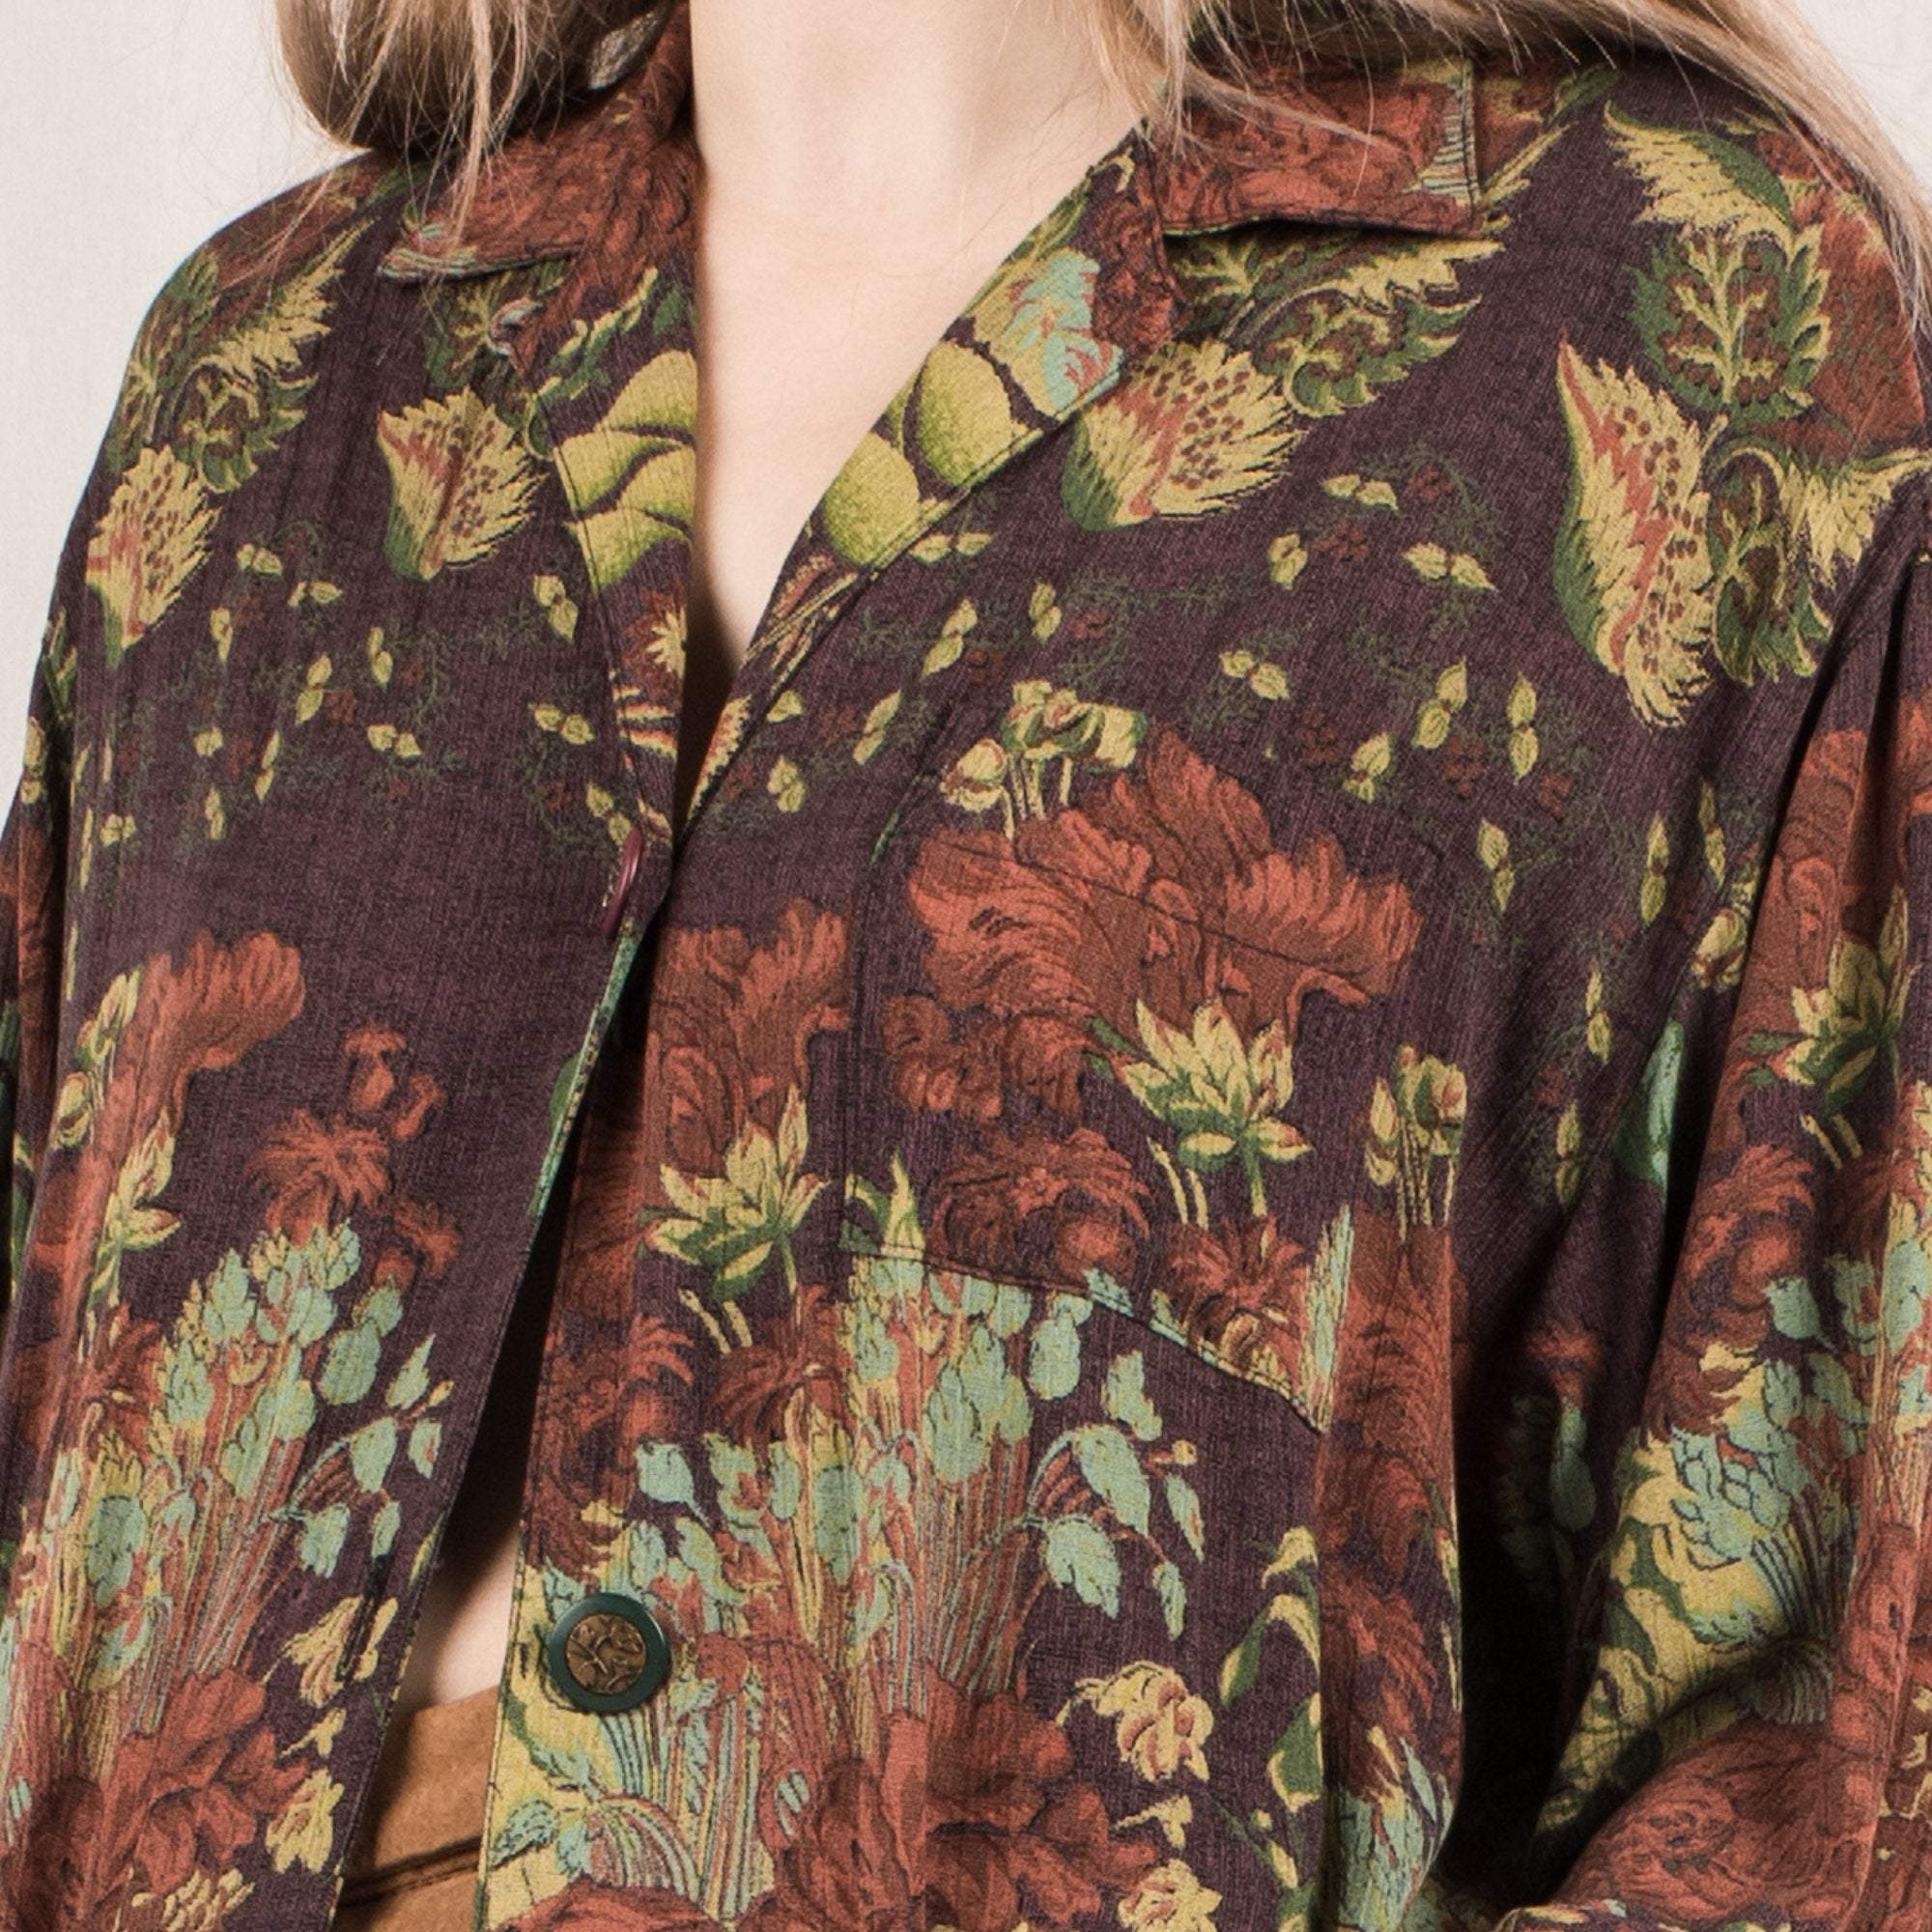 Vintage Oversized Floral Light Weight Cardigan / S/M